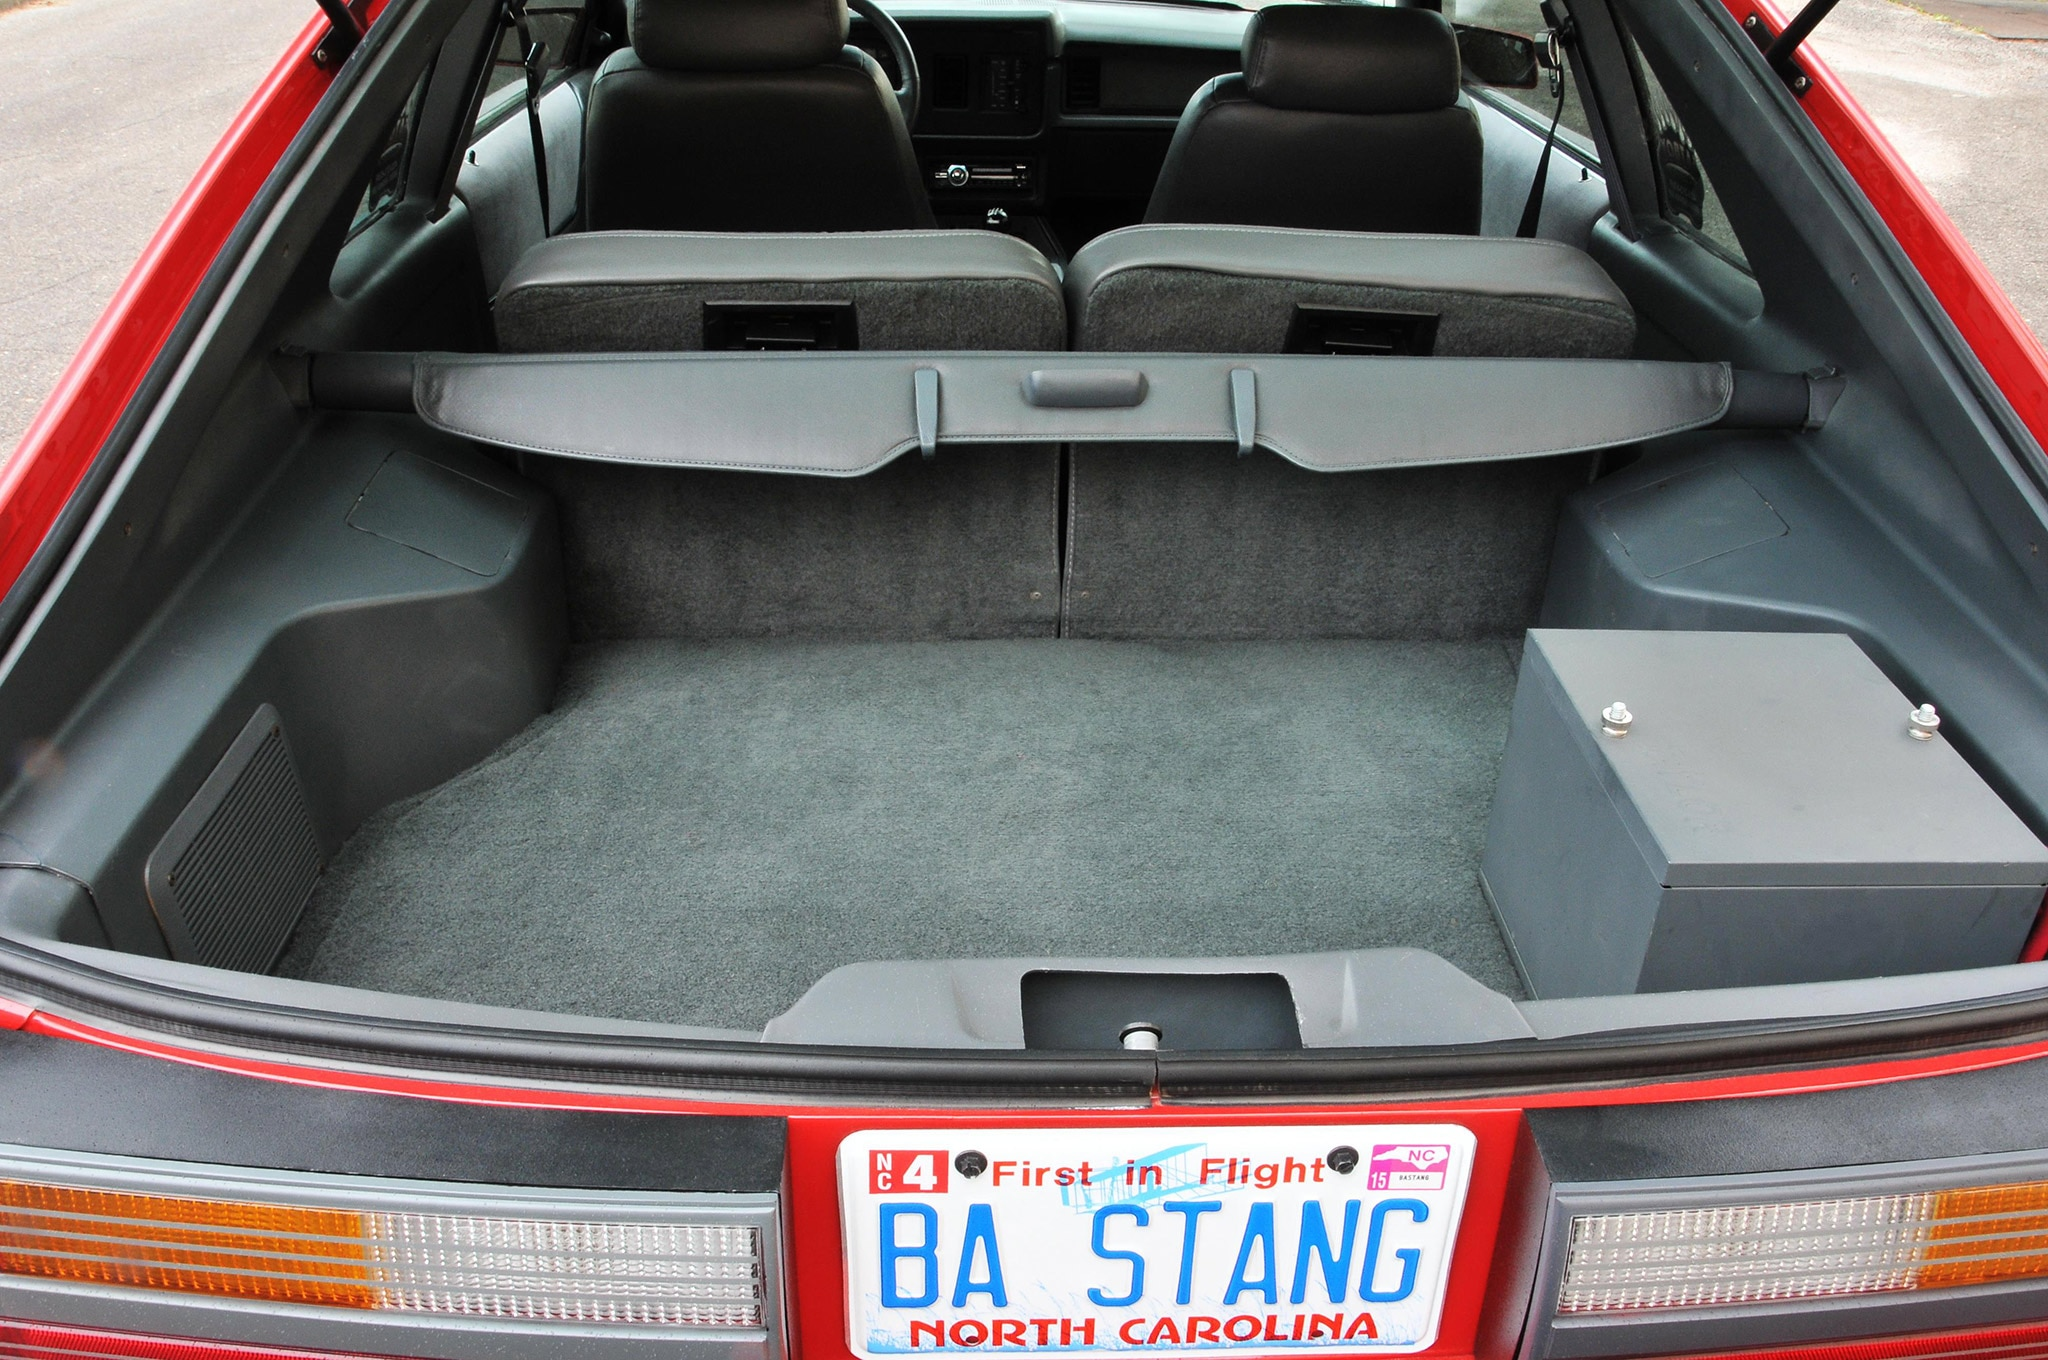 1986 Ford Mustang Svo Coyote Vermillion Red Trunk